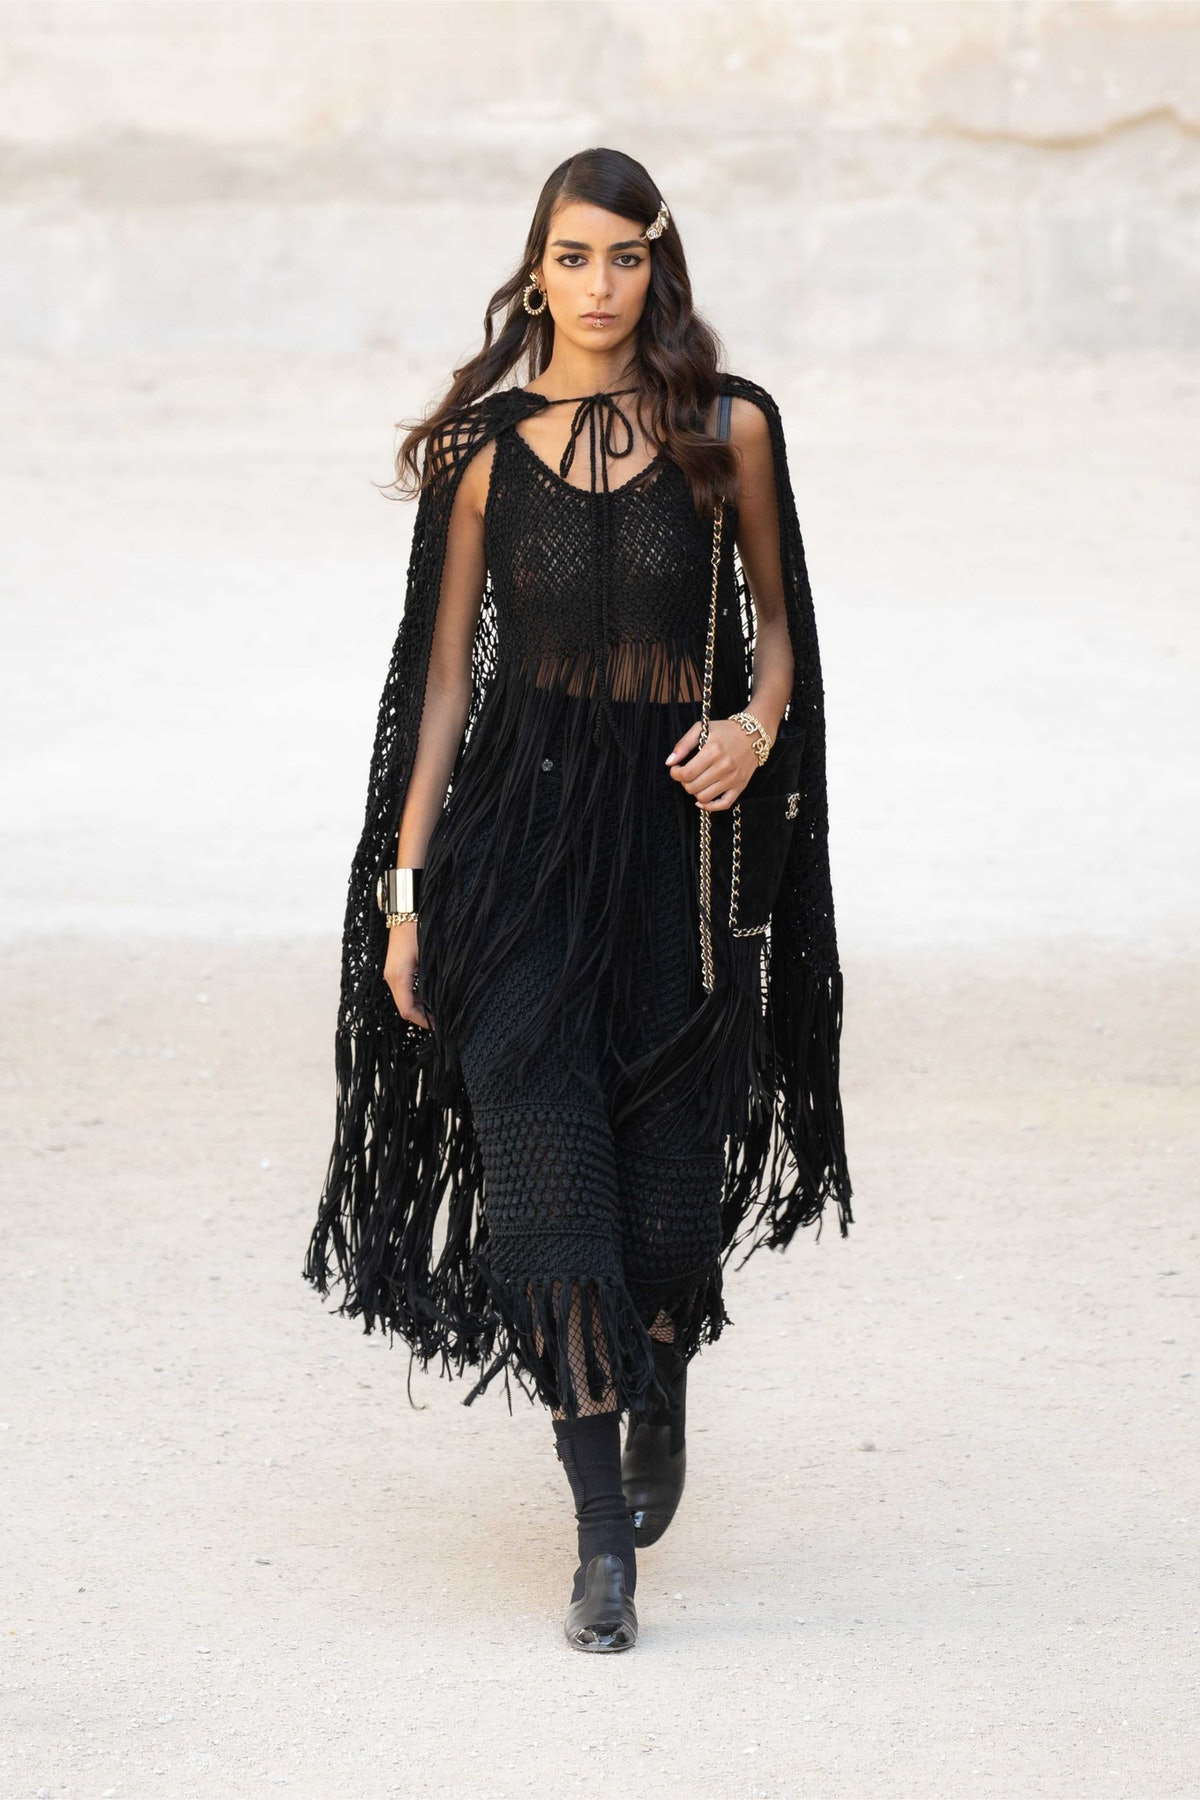 model in sheer black Chanel cape and dress